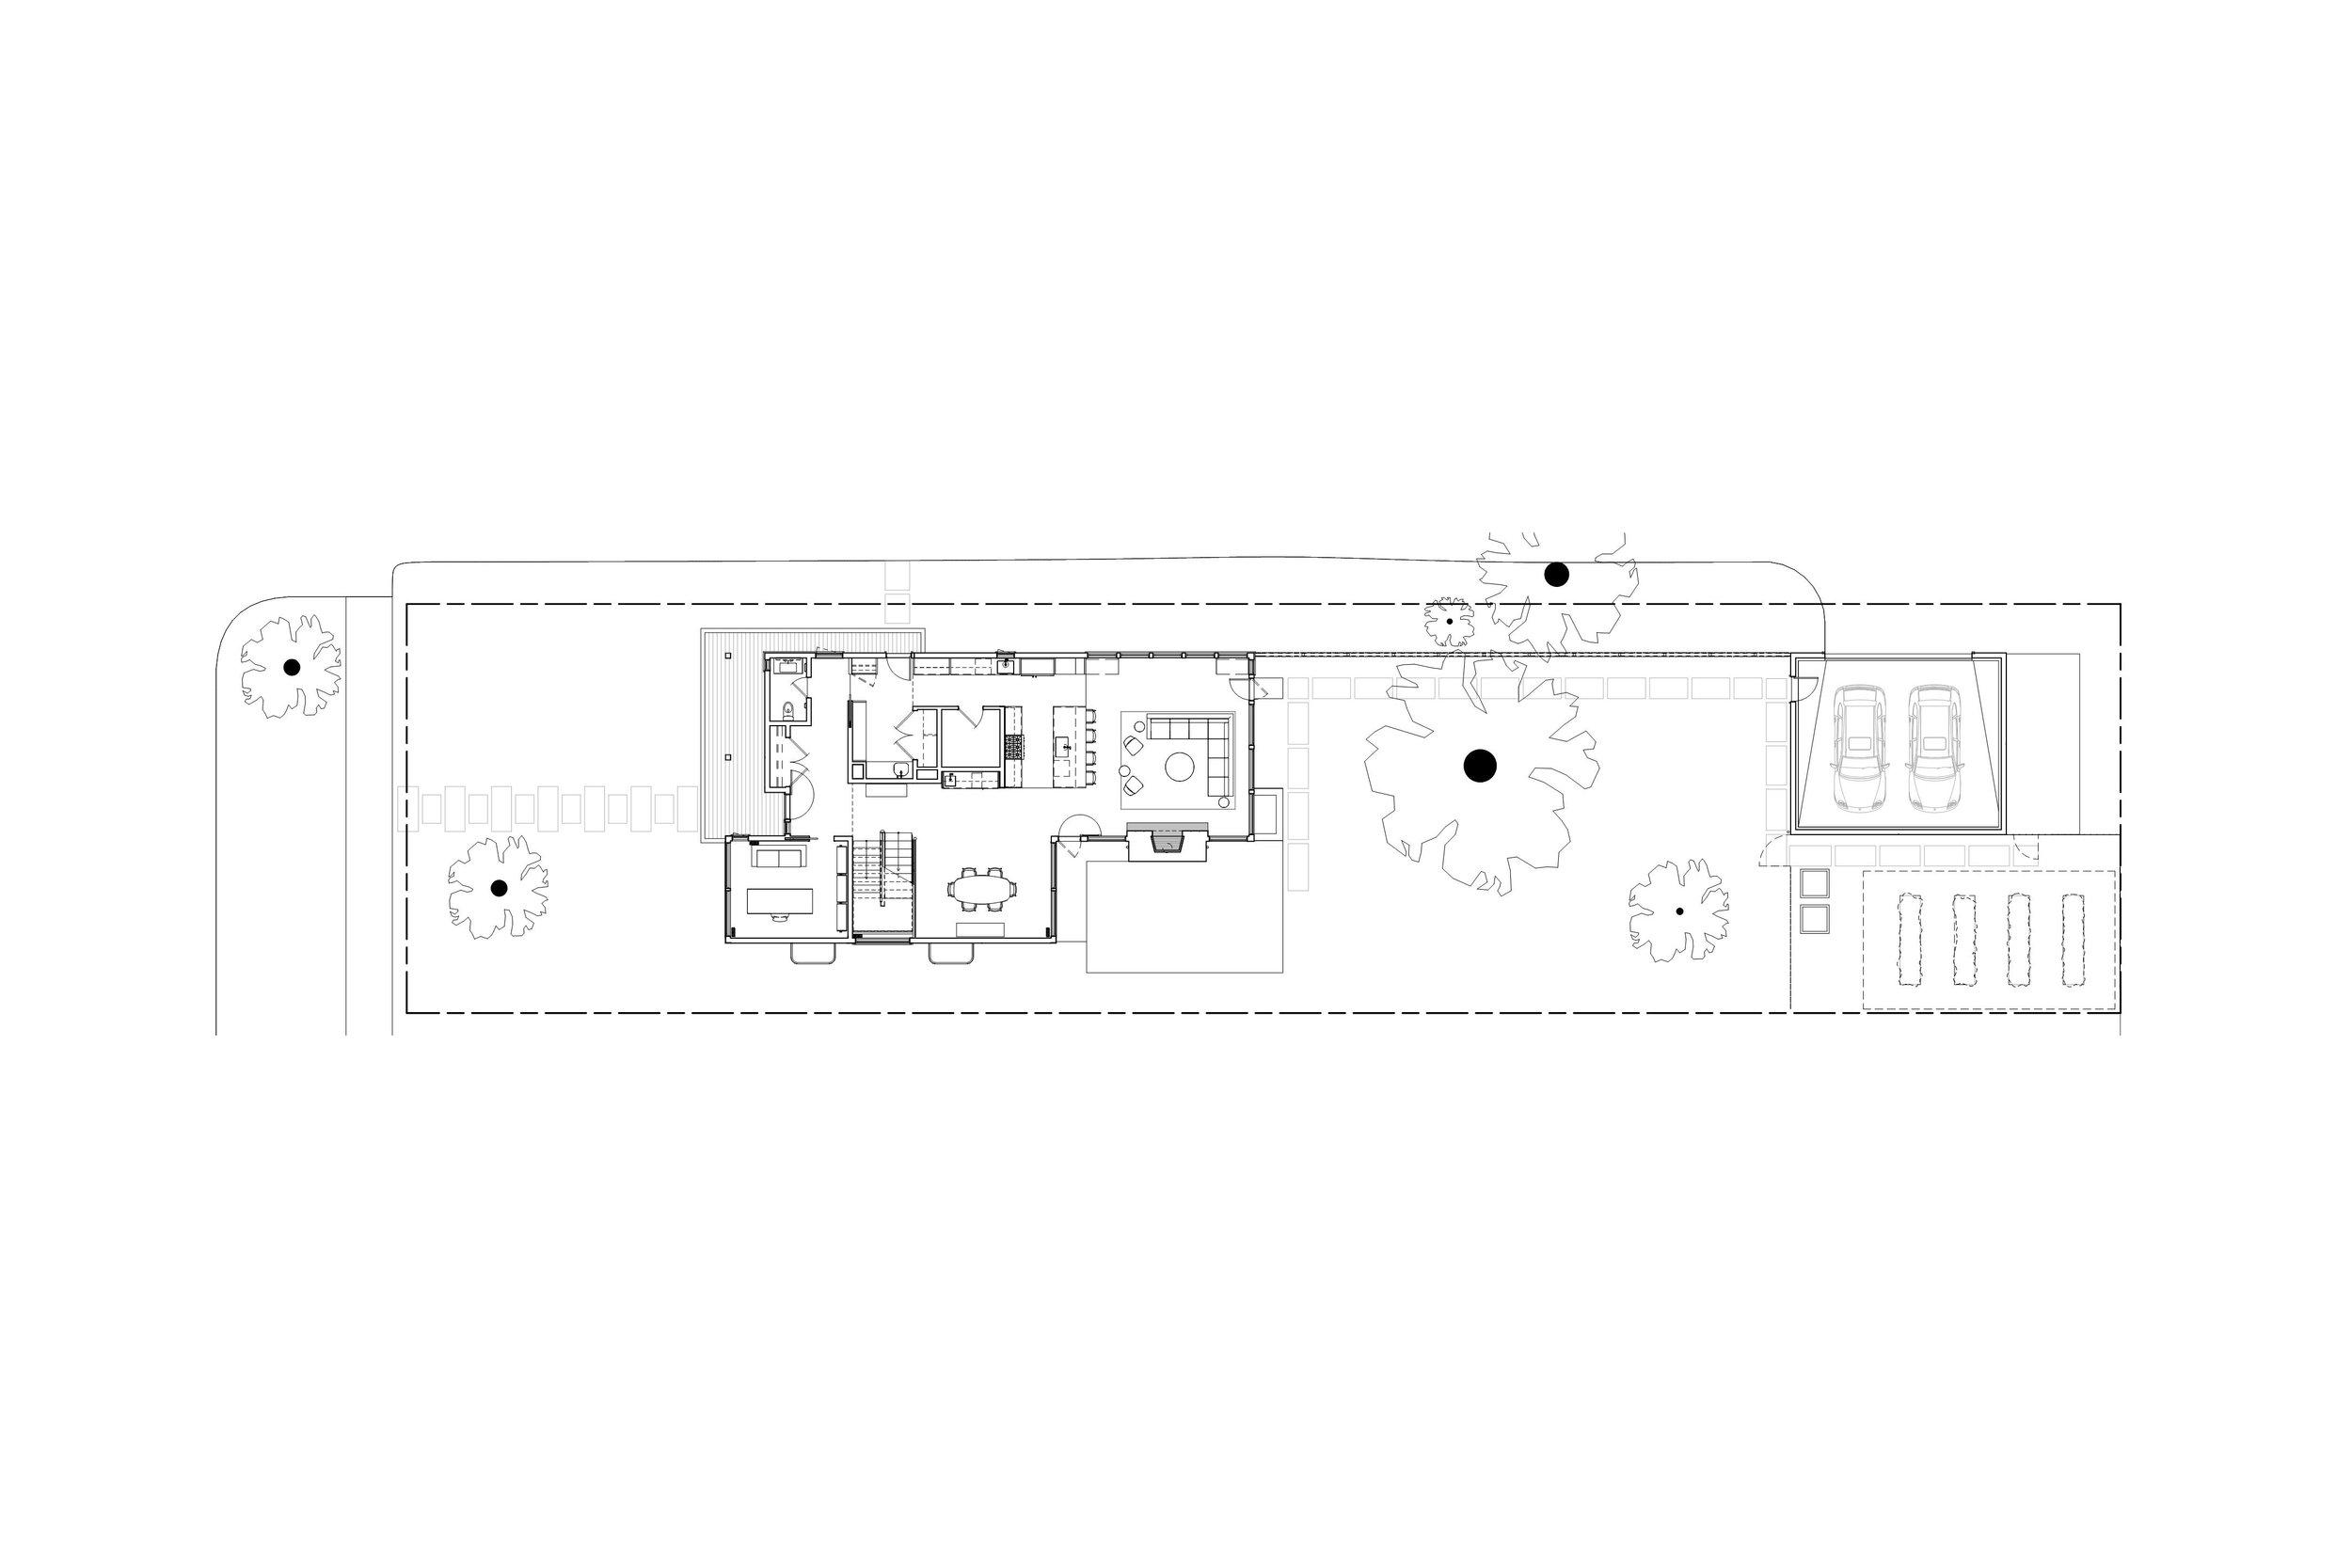 Family Farmhouse_007 Plan F01.jpg